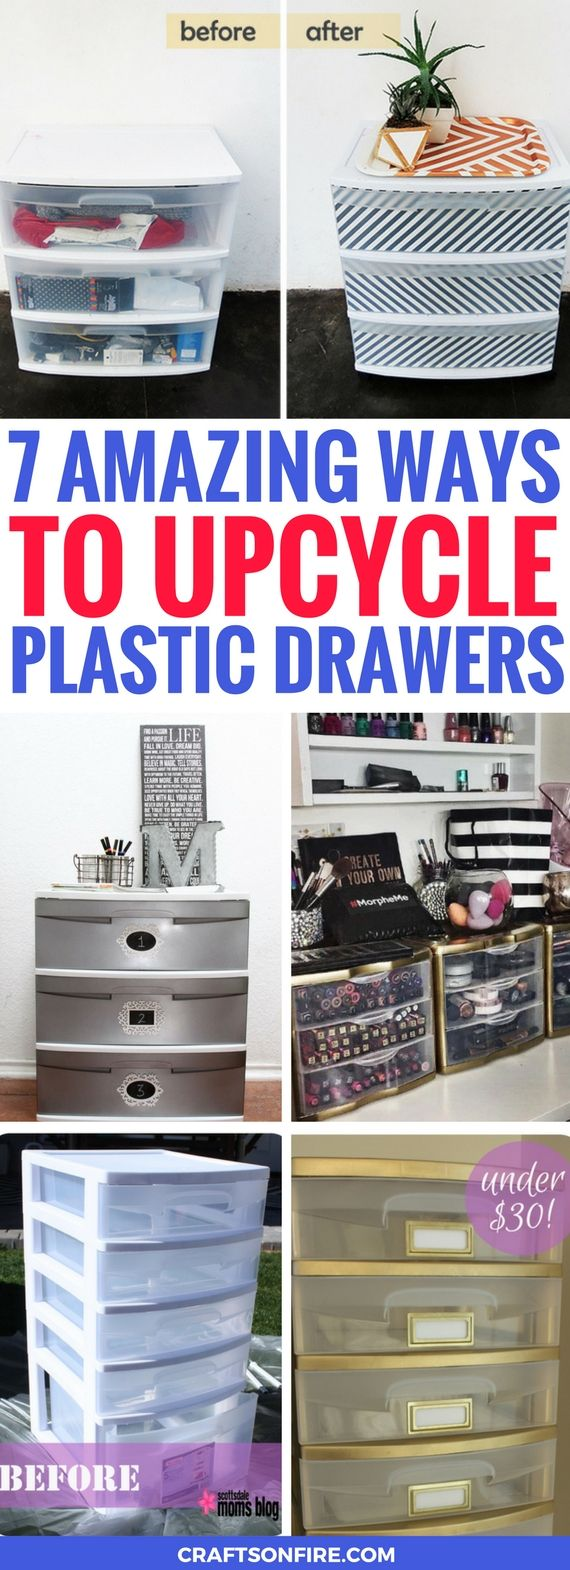 8 Amazing Ways To Upcycle Plastic Drawers Craftsonfire Plastic Storage Drawers Plastic Drawers Upcycle Plastic